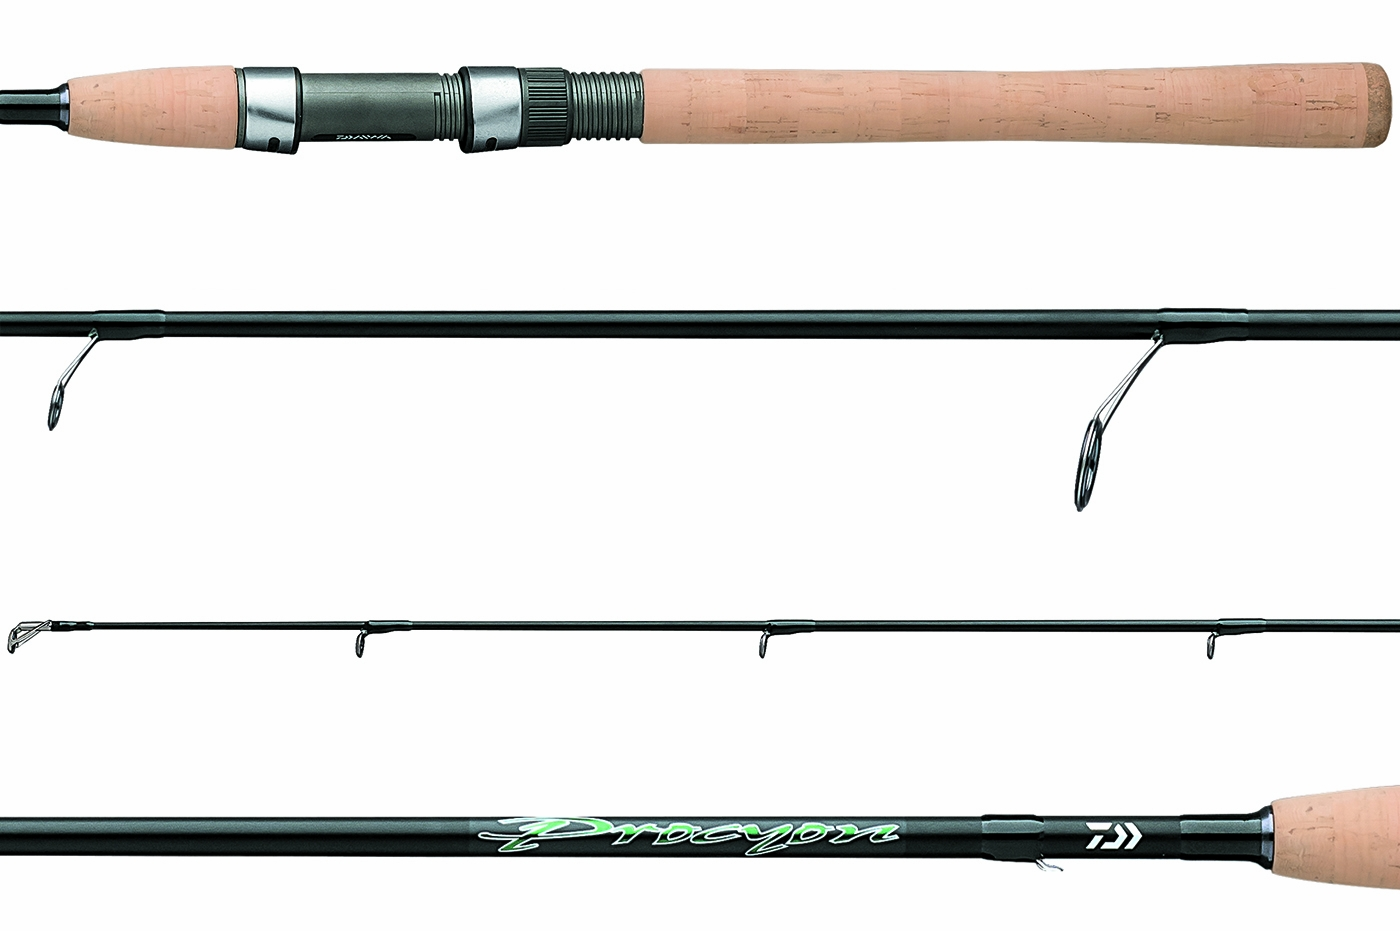 Daiwa procyon inshore spinning rods tackledirect for Offshore fishing tackle